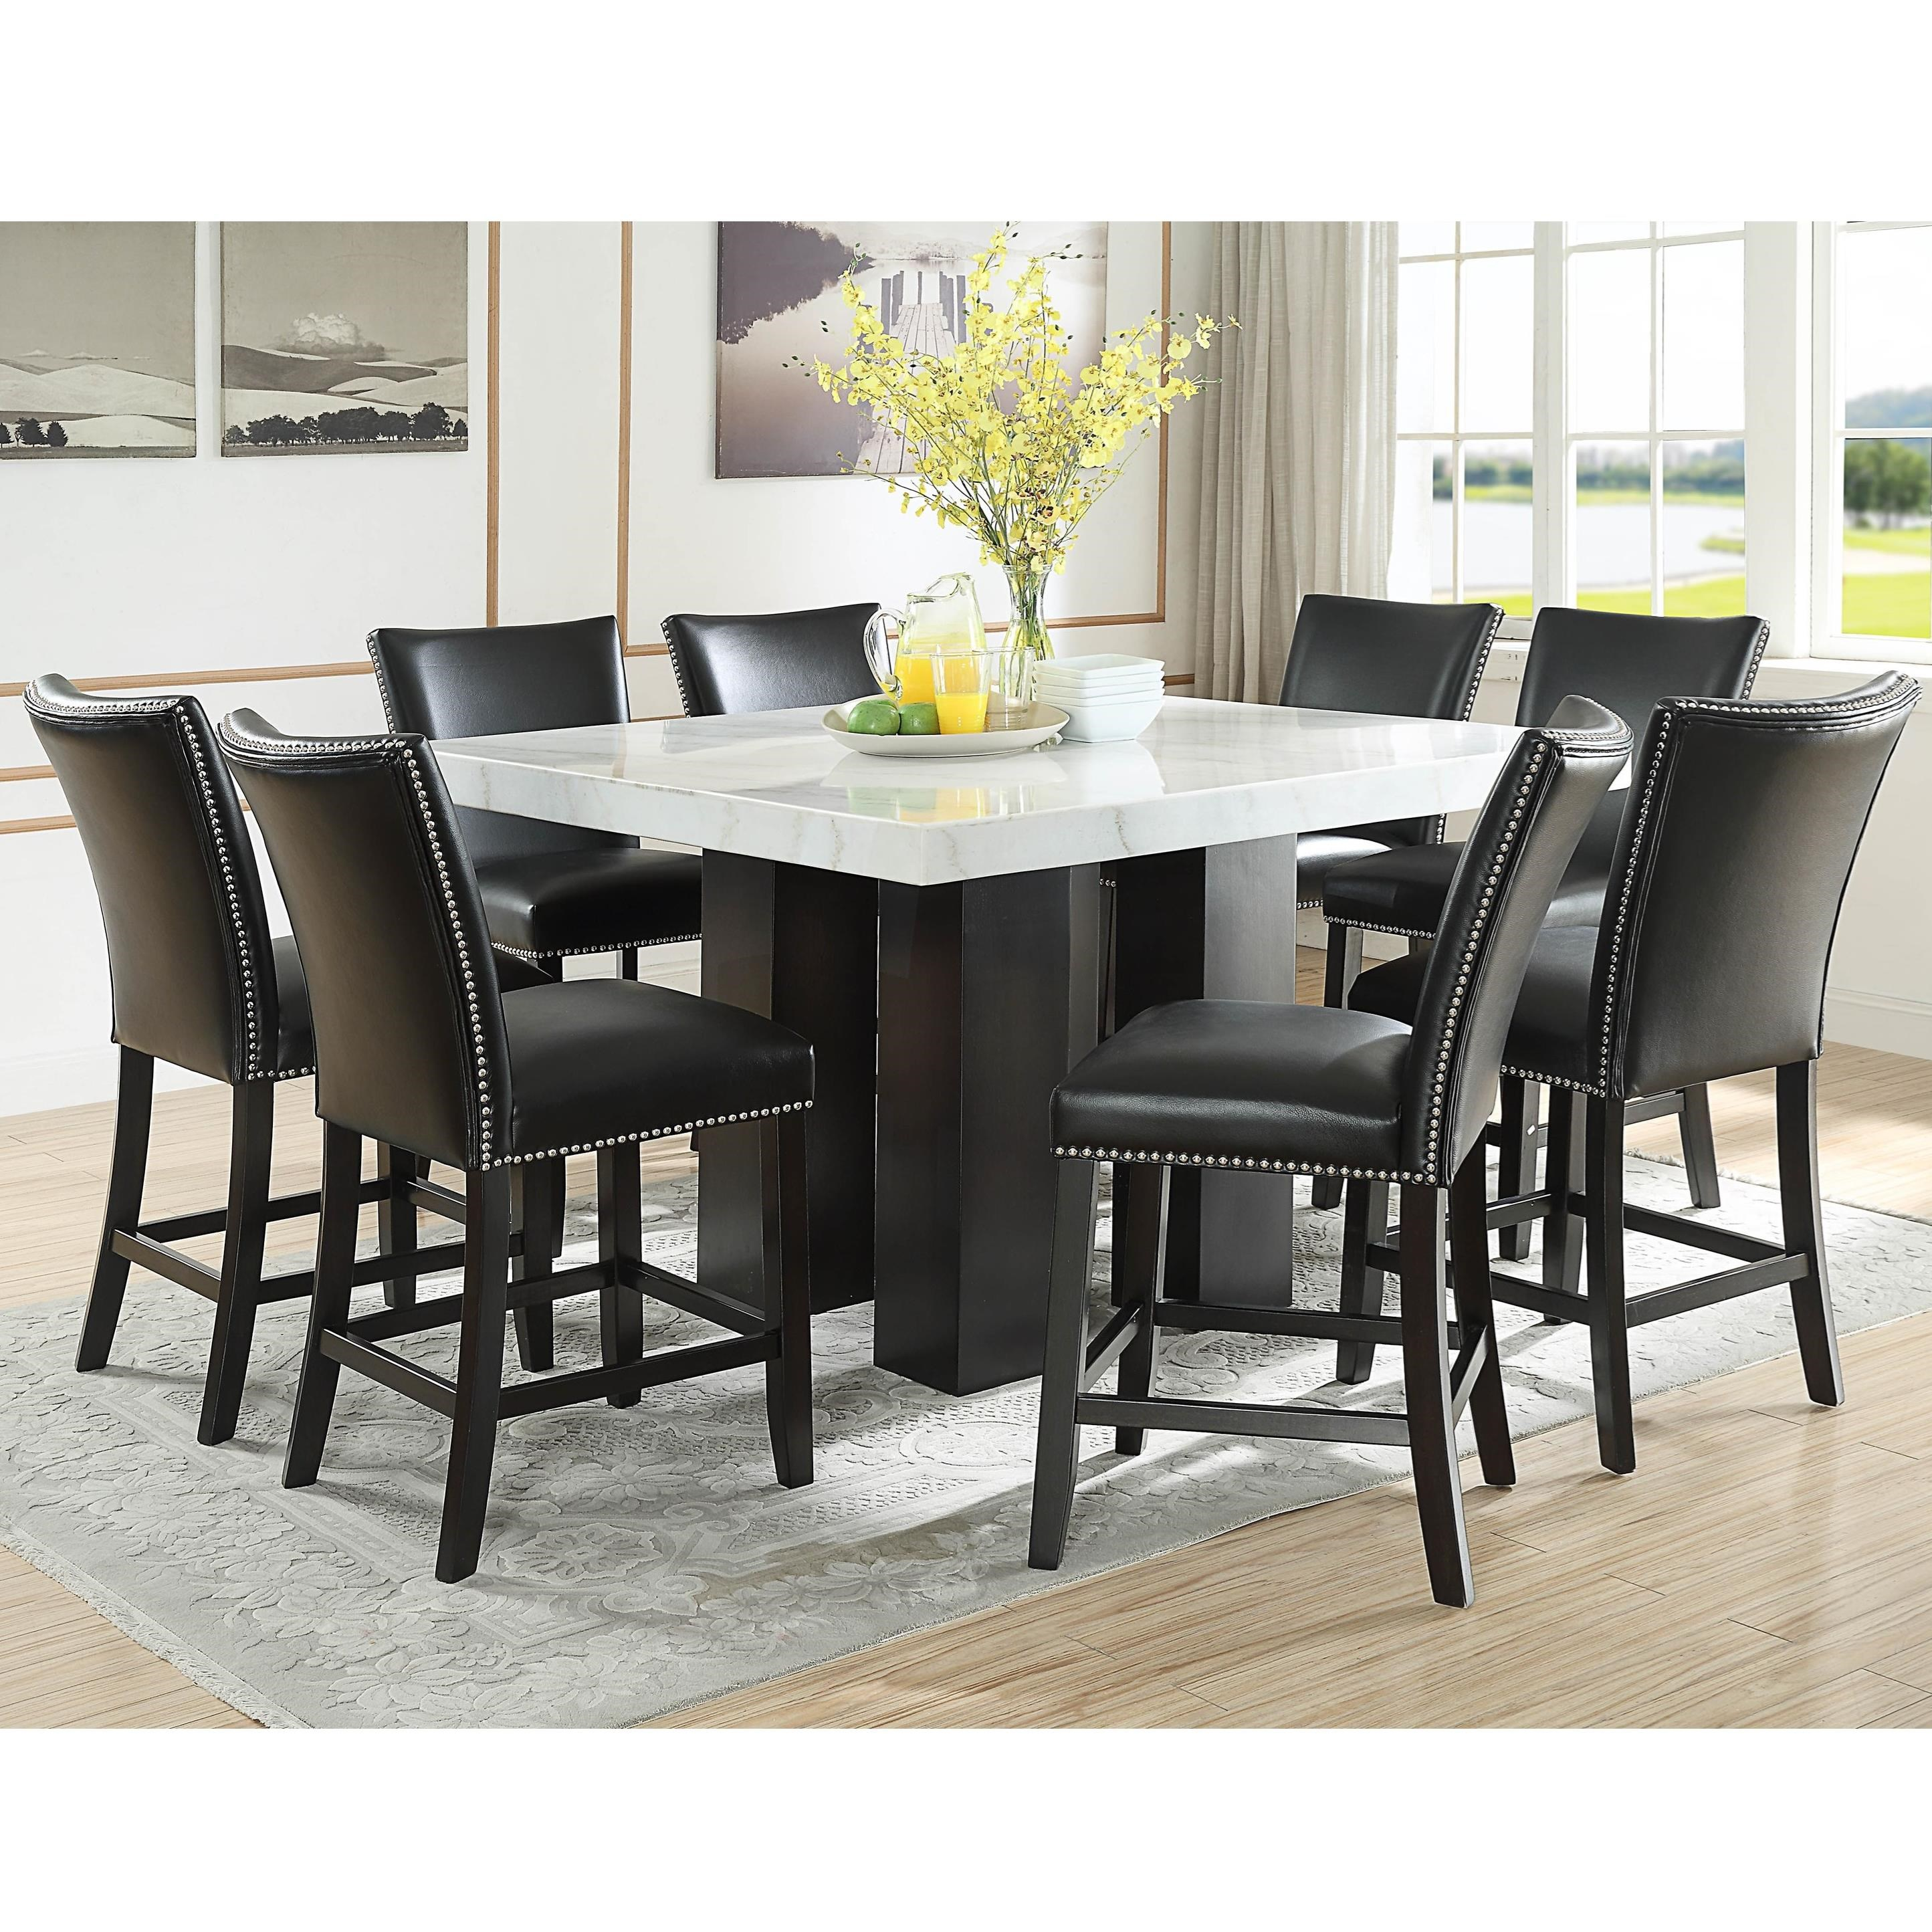 Steve Silver Camila 9 Piece Counter Height Dining Set With